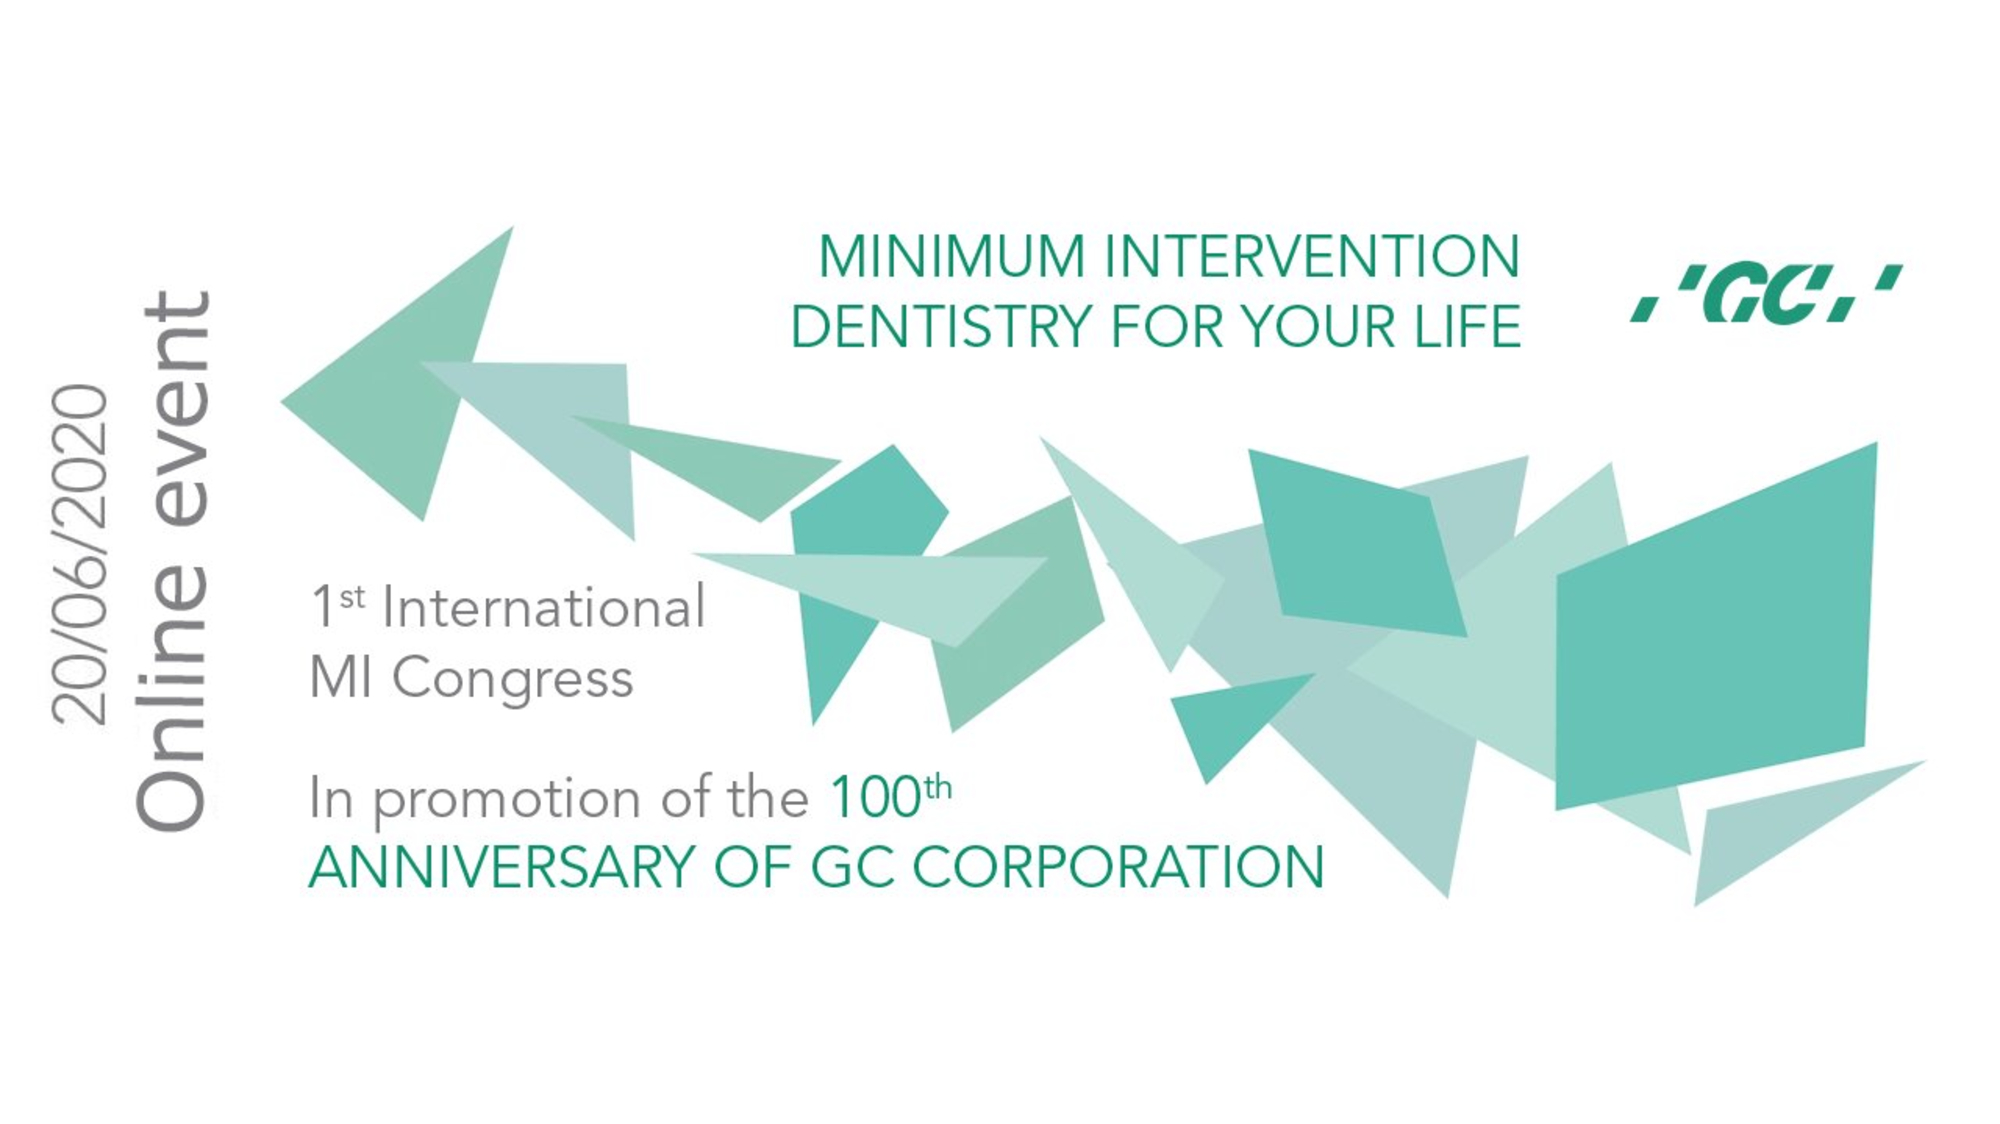 1st International MI Congress